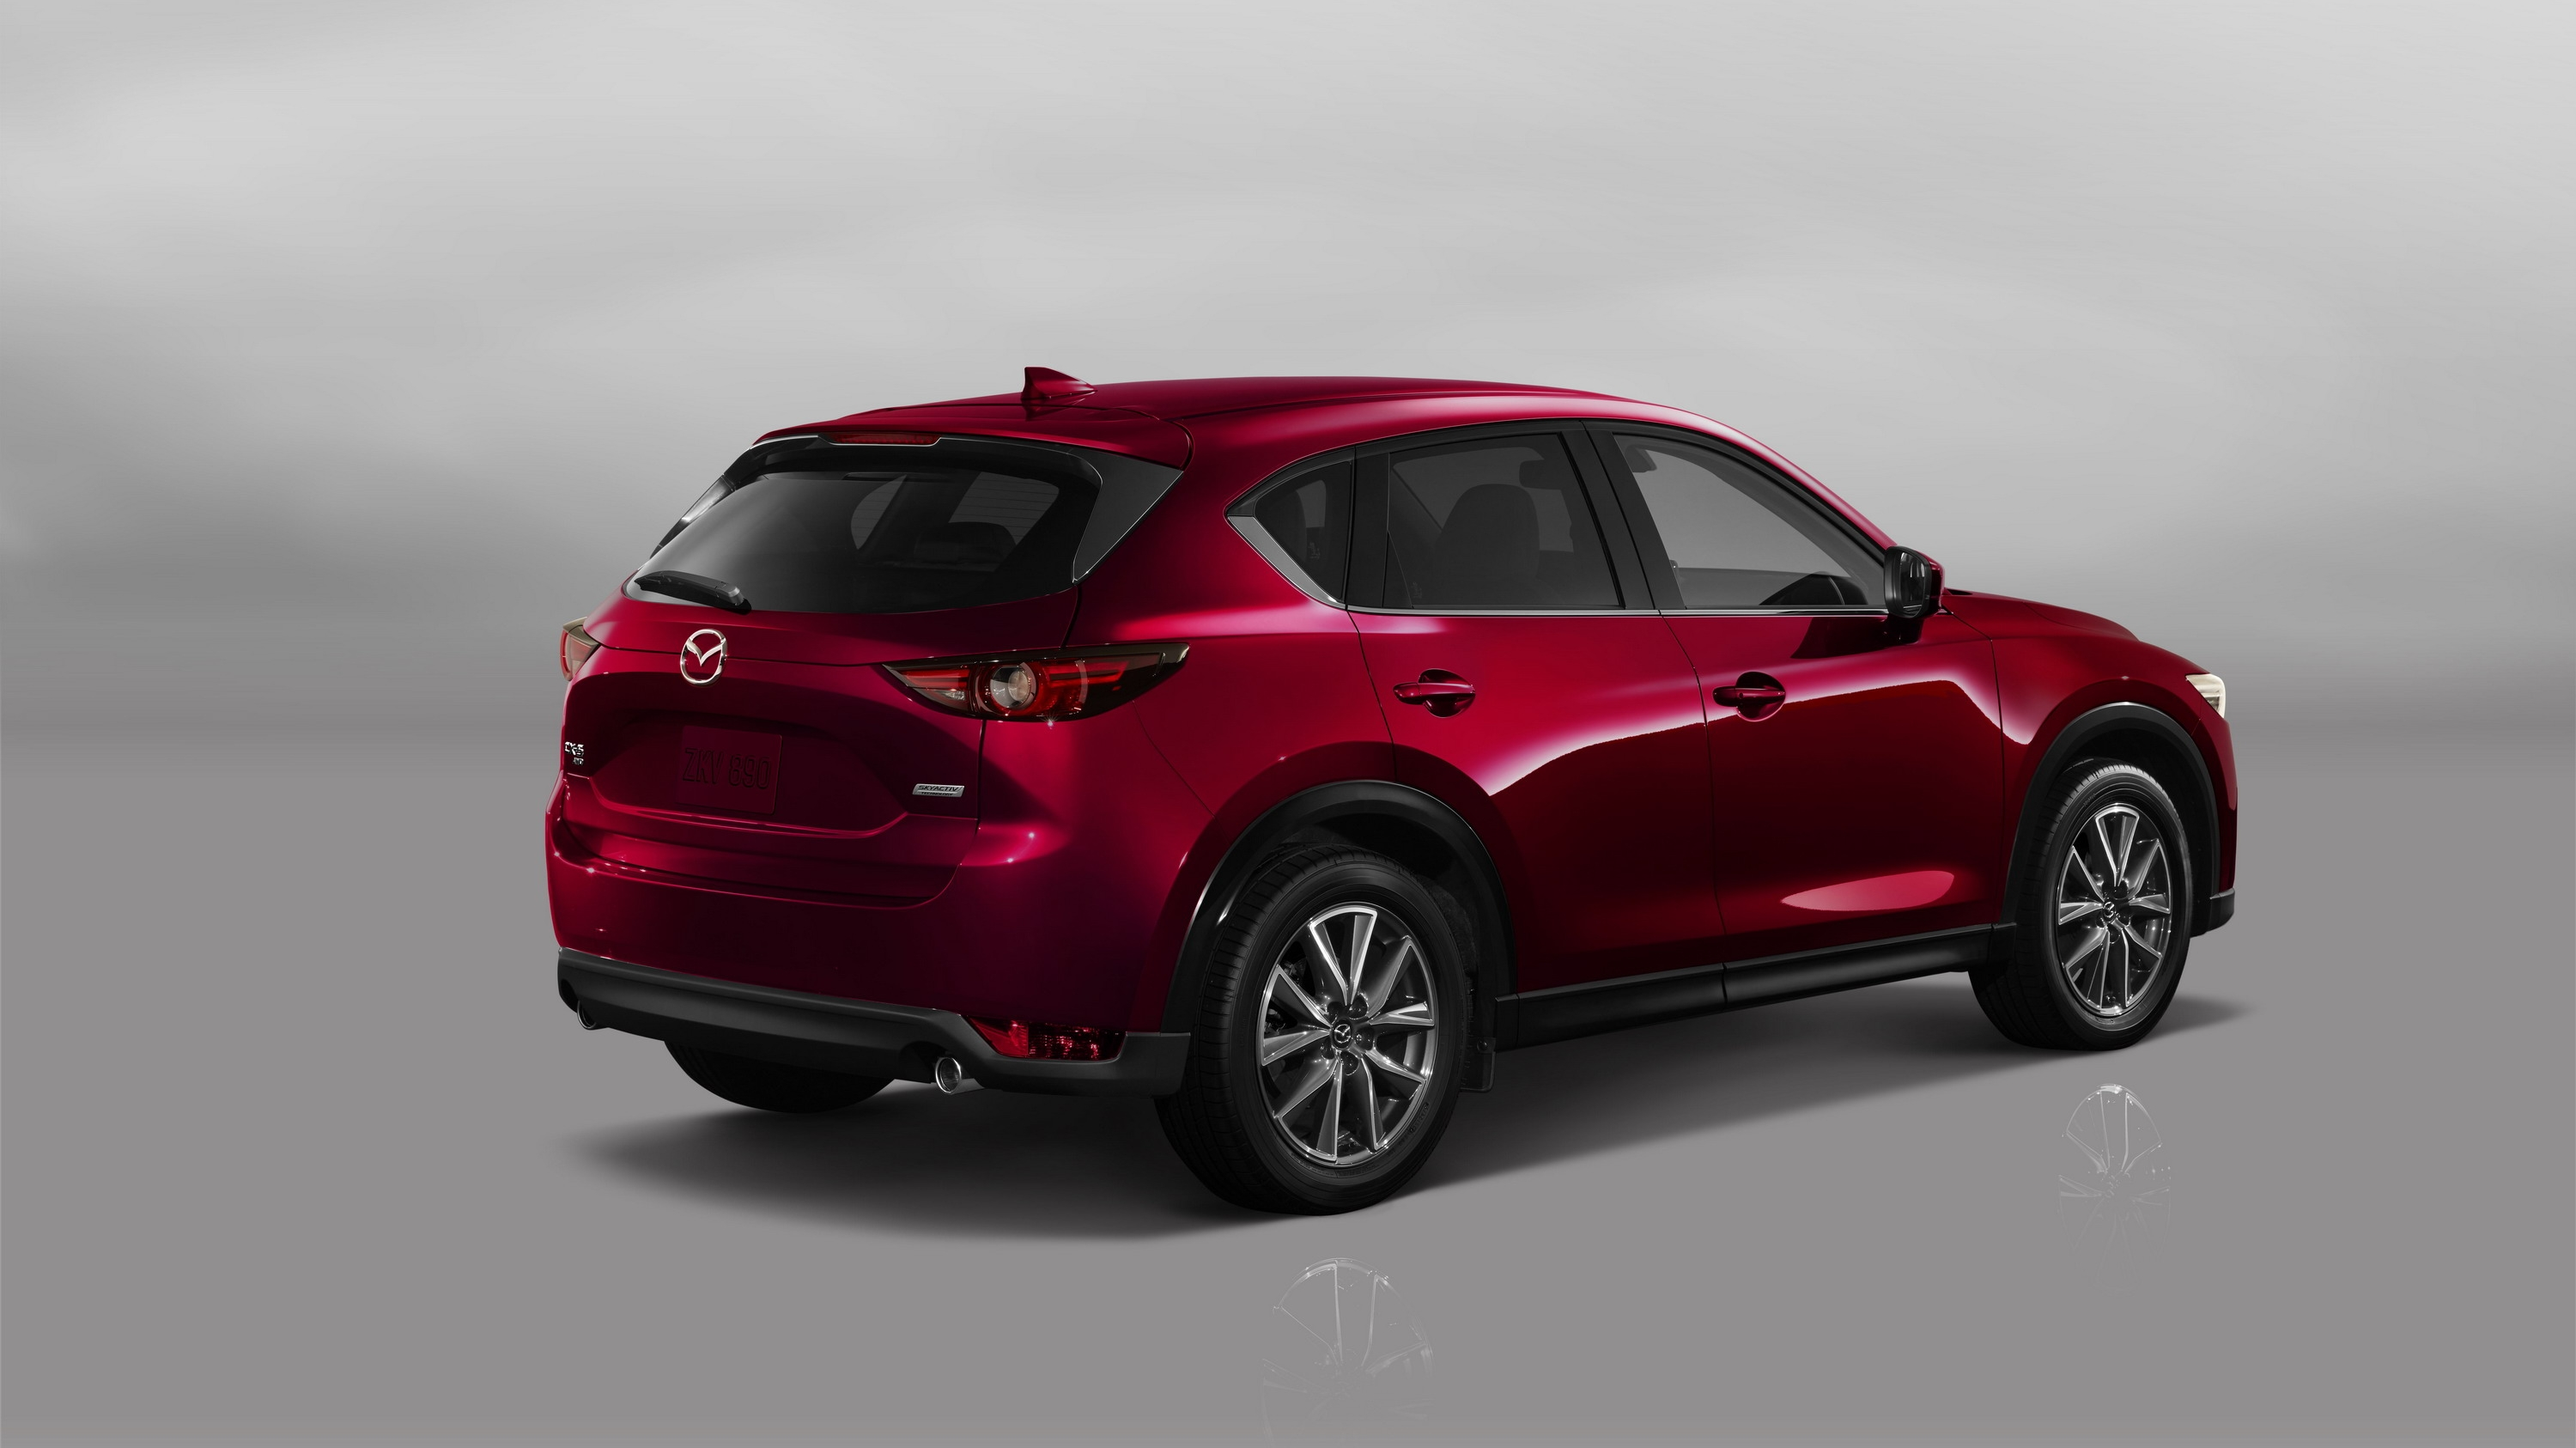 autoguide roof mazda vs toyota news rack comparison car cx comparisons com